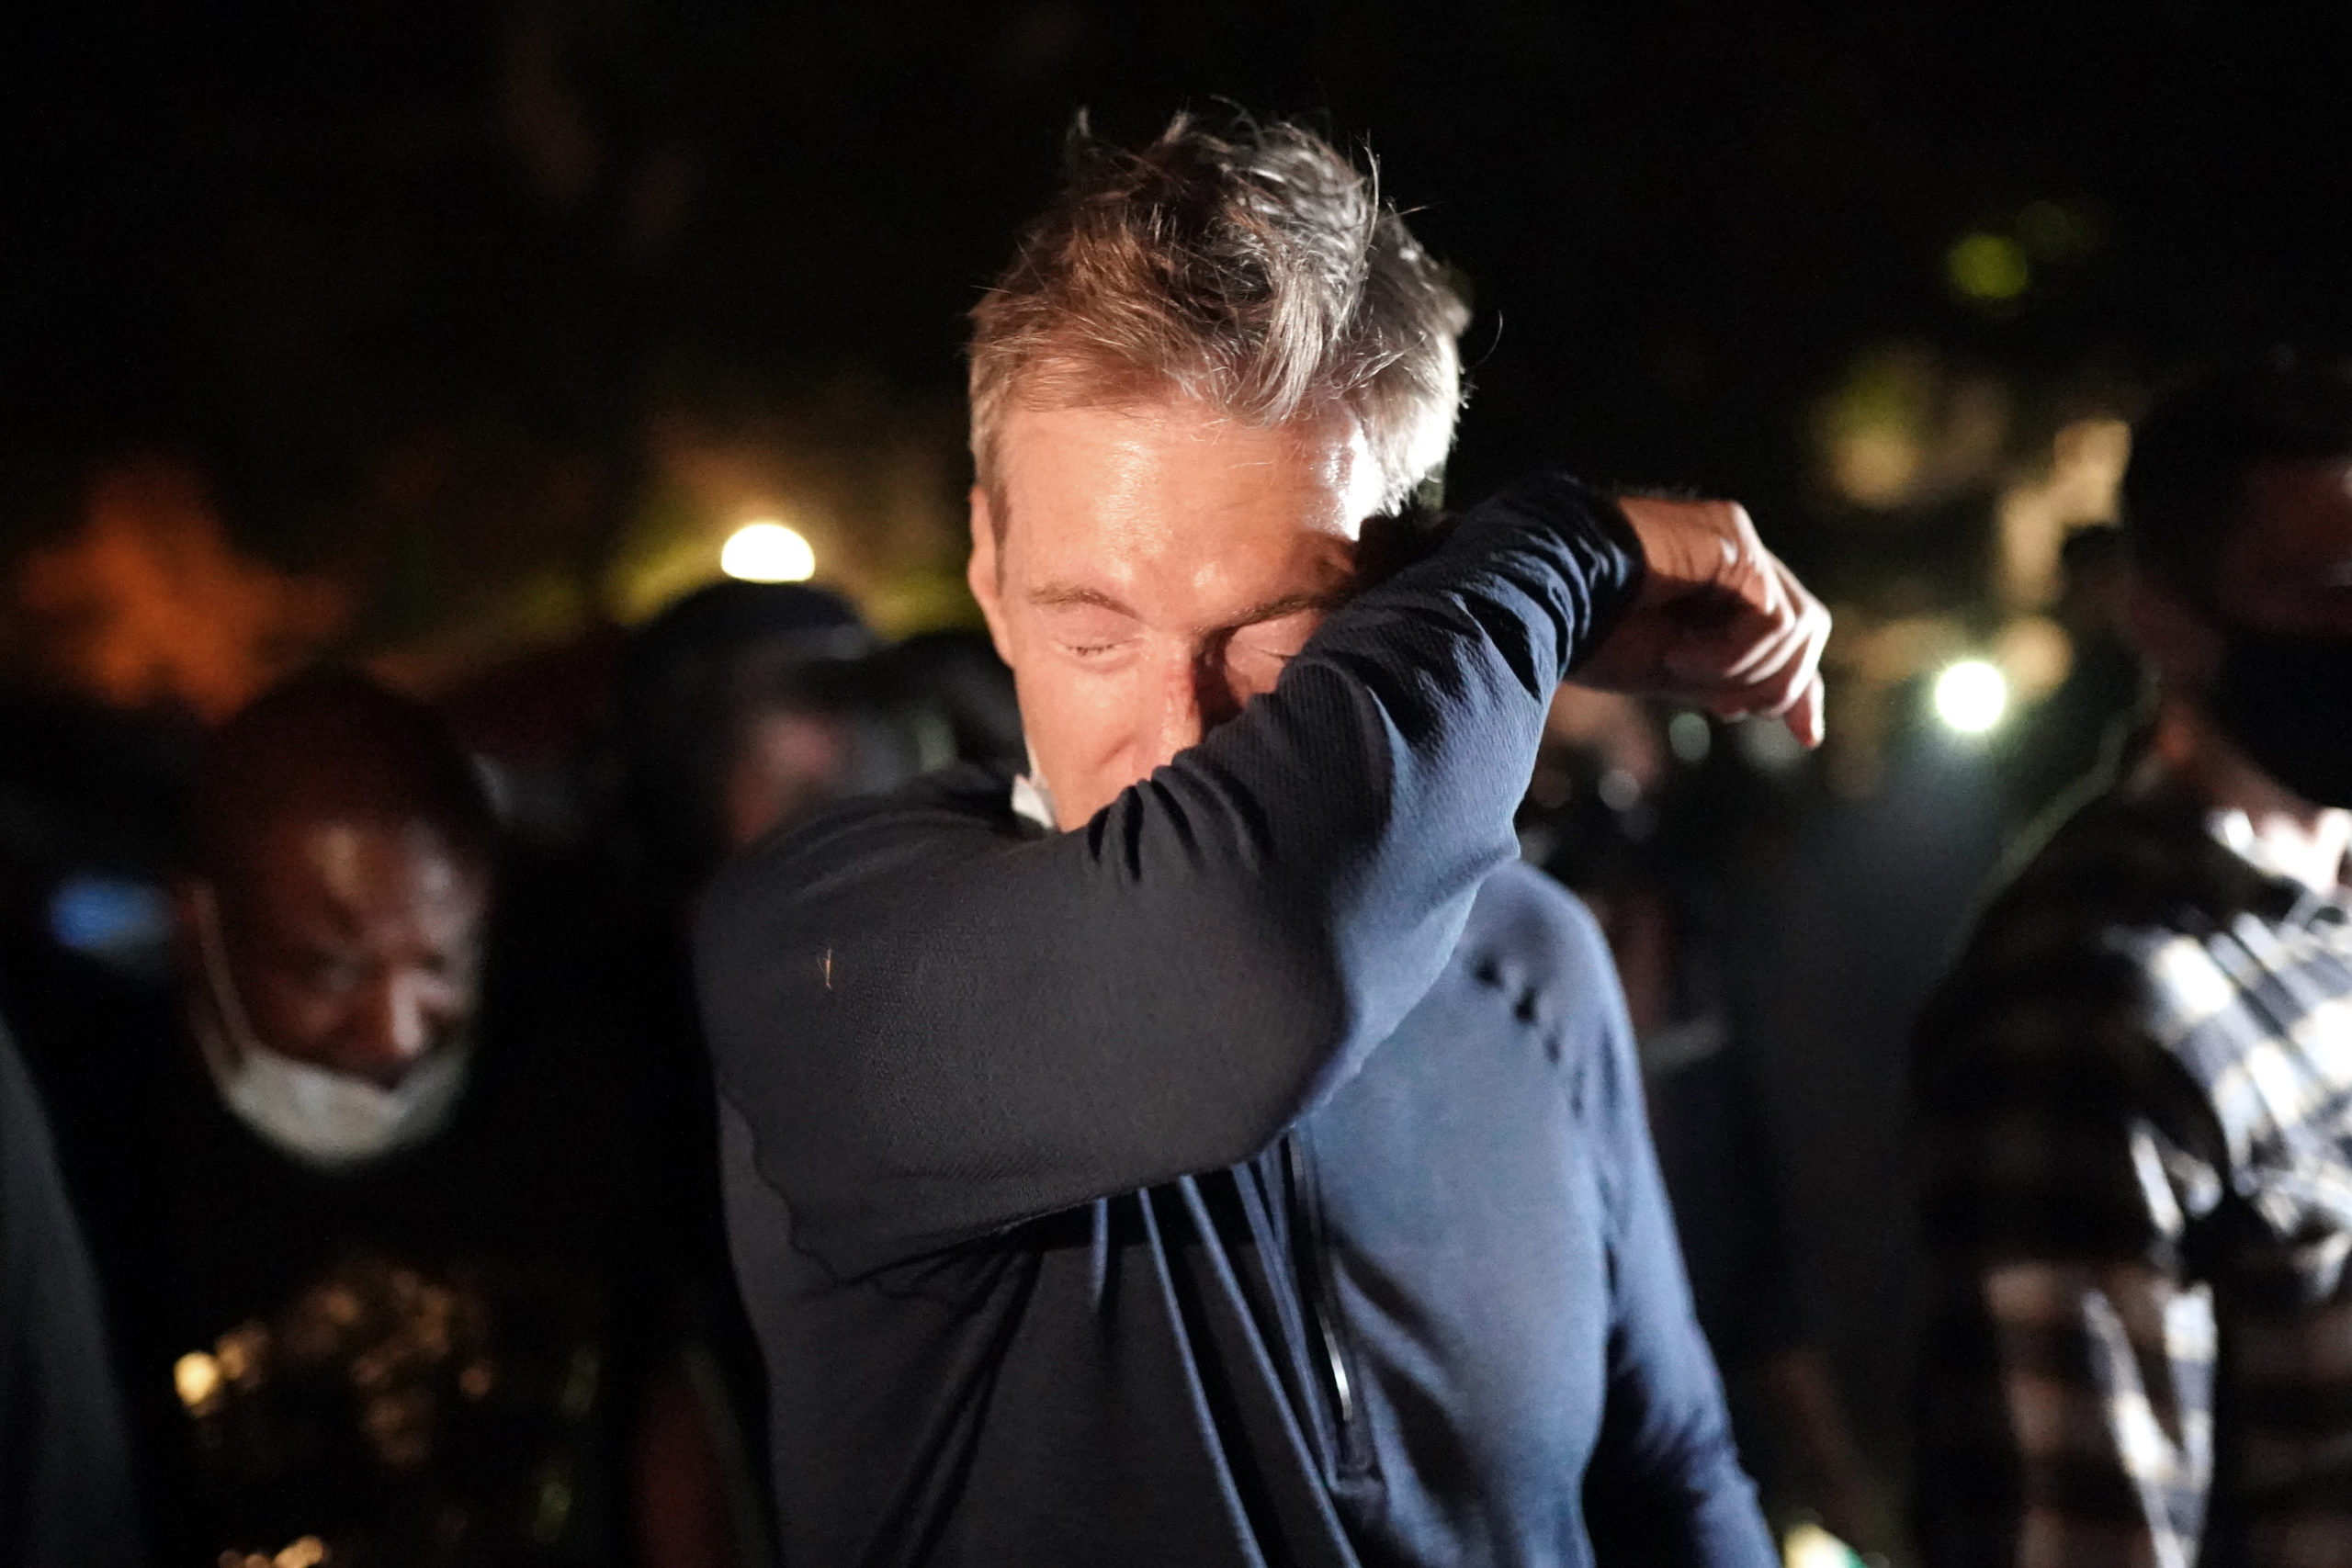 Portland Mayor Ted Wheeler reacts after being exposed to tear gas fired by federal officers while attending a protest against police brutality and racial injustice in front of the Mark O. Hatfield U.S. Courthouse on July 22, 2020 in Portland, Oregon. State and city elected officials have called for the federal officers to leave Portland as clashes between protesters and federal police continue to escalate. (Photo by Nathan Howard/Getty Images)